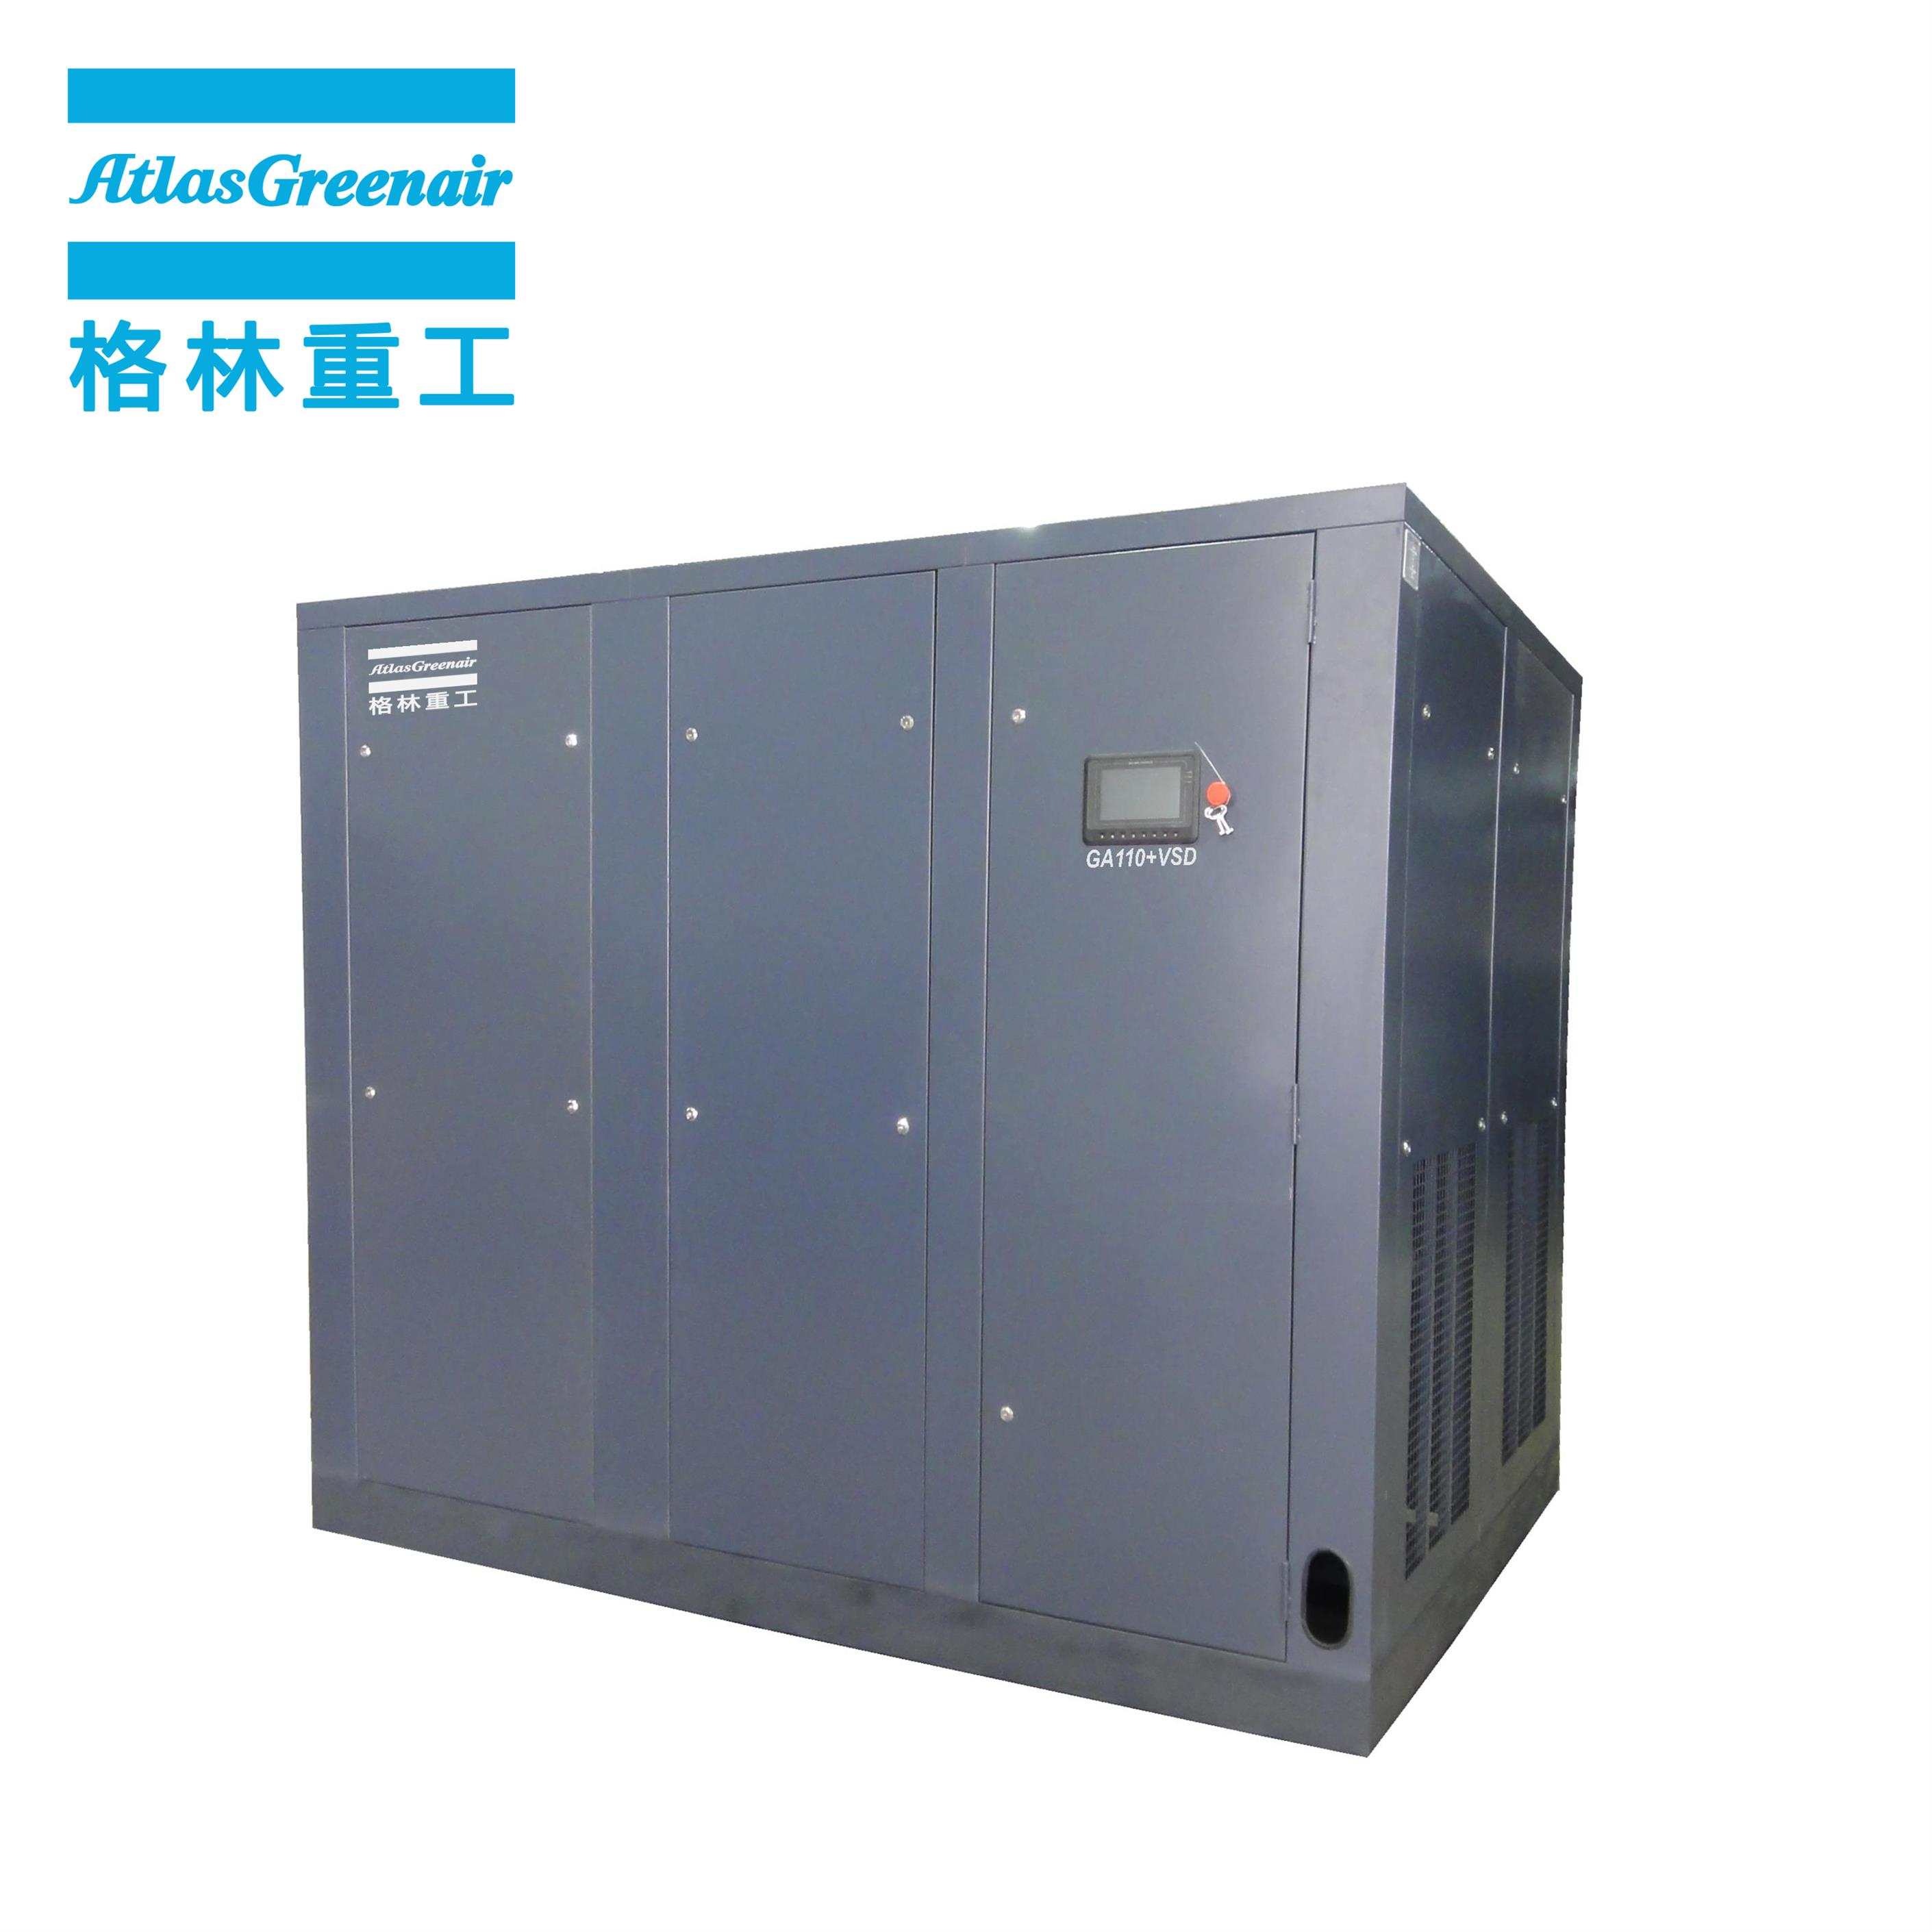 Atlas Greenair Screw Air Compressor new variable speed air compressor with an asynchronous motor for sale-2